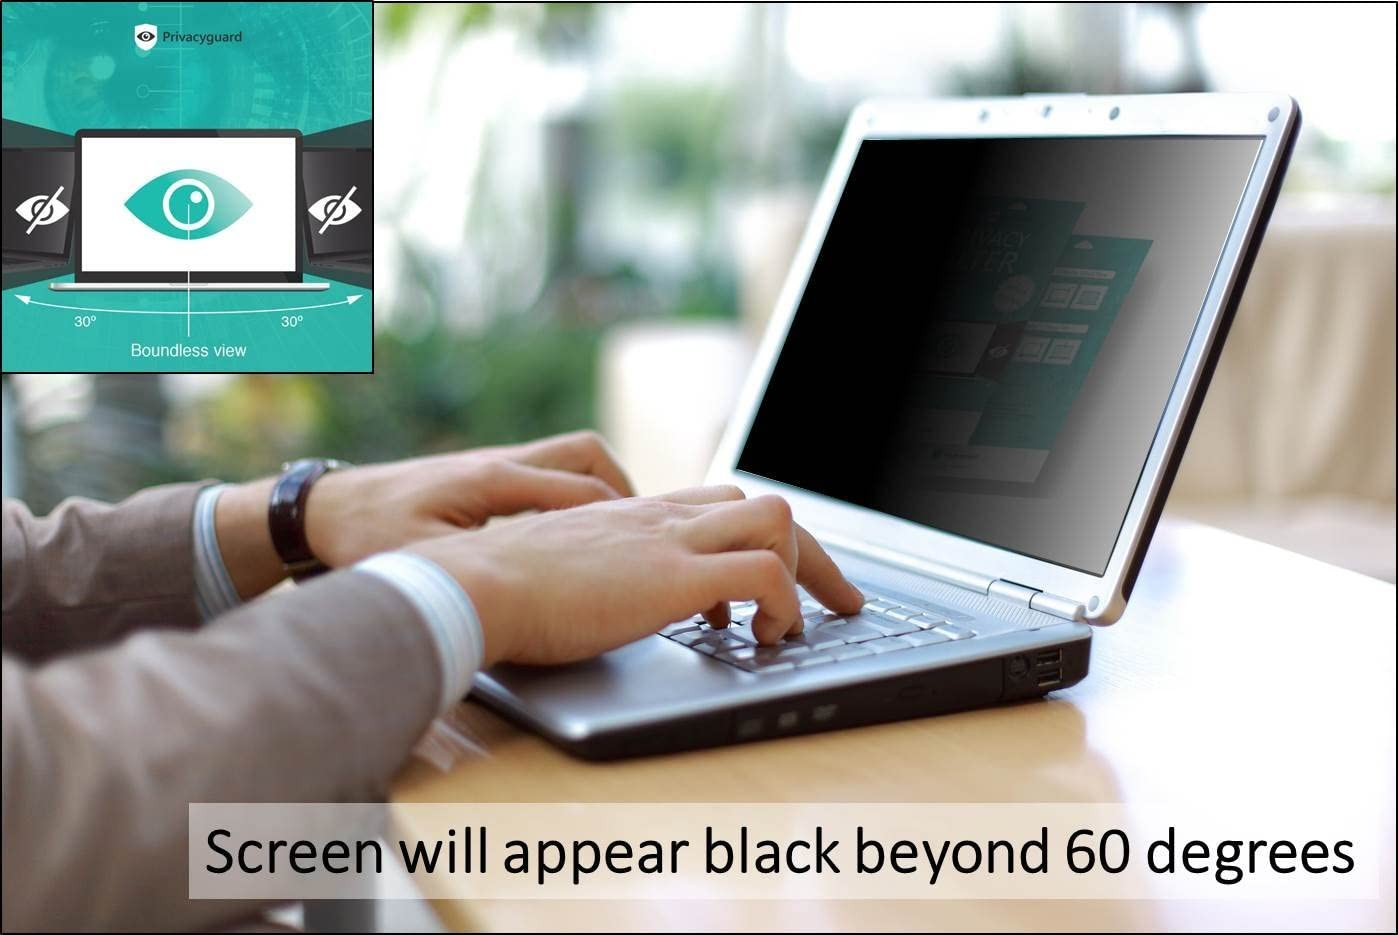 15.6 inch // 16:9 widescreen // 60 degrees Black  12,5 various sizes:12.5-14 Privacyguard eye protection film filter privacy for laptop notebook monitor